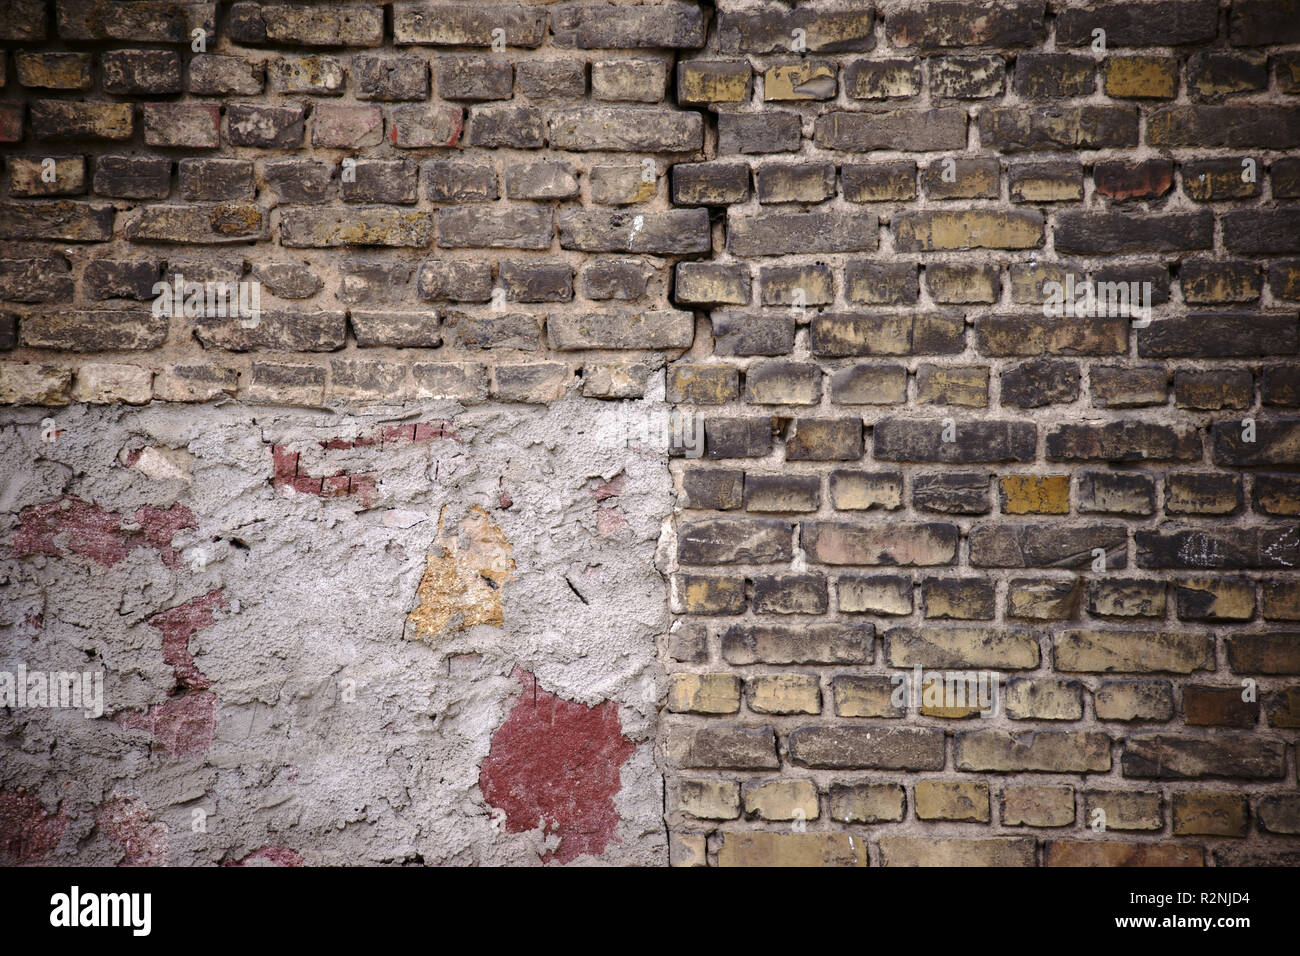 Rustic wall in danger of collapse out of staggered and broken bricks with a crack and repair points, - Stock Image